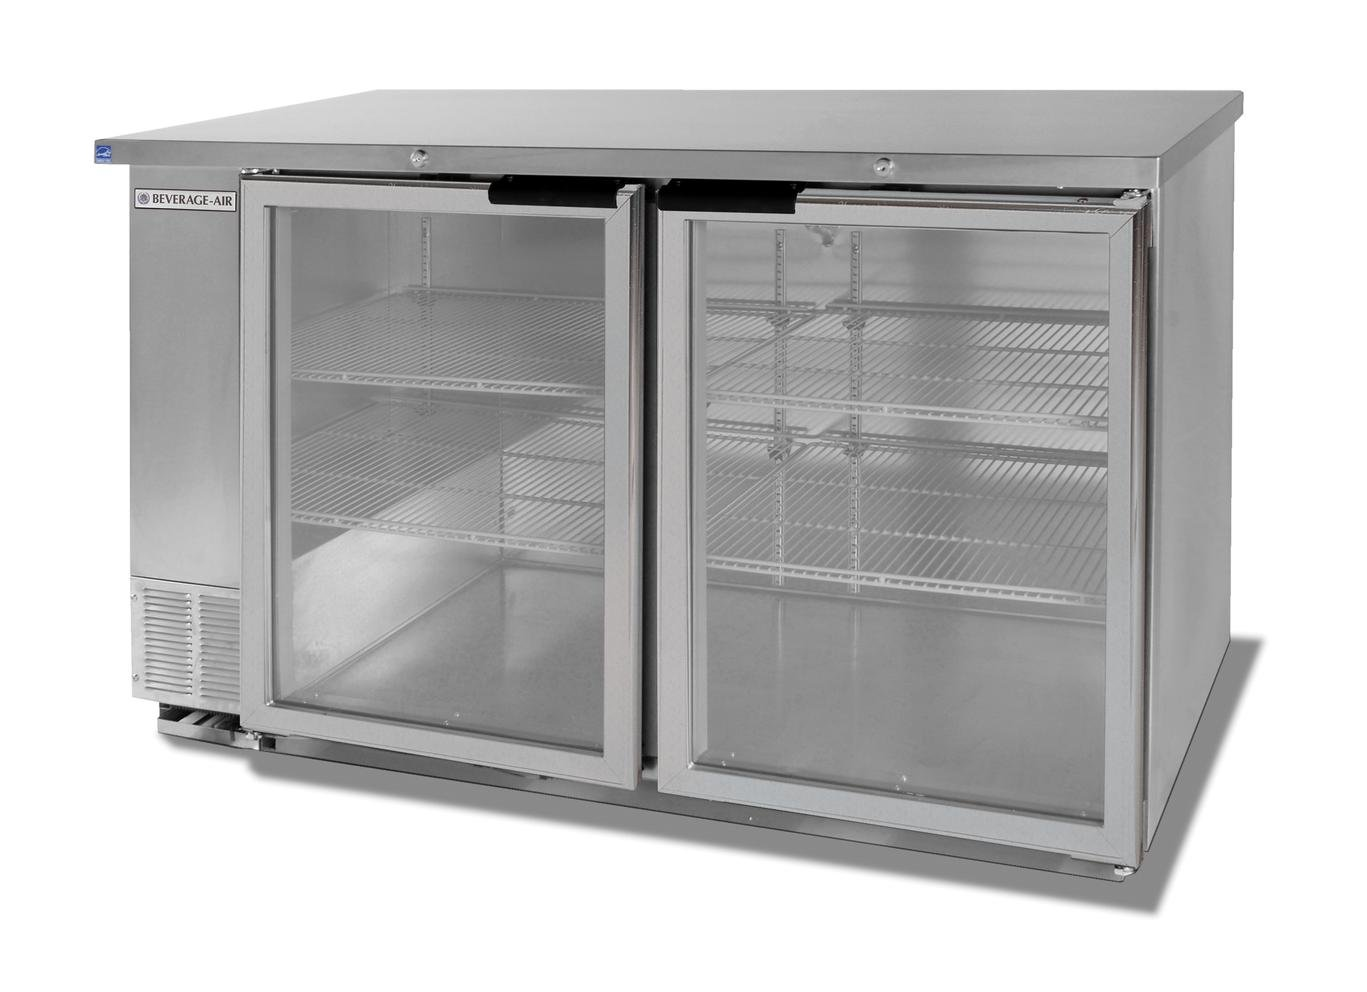 12.1cf Two Section Stainless Steel Shallow Depth Bar Cooler